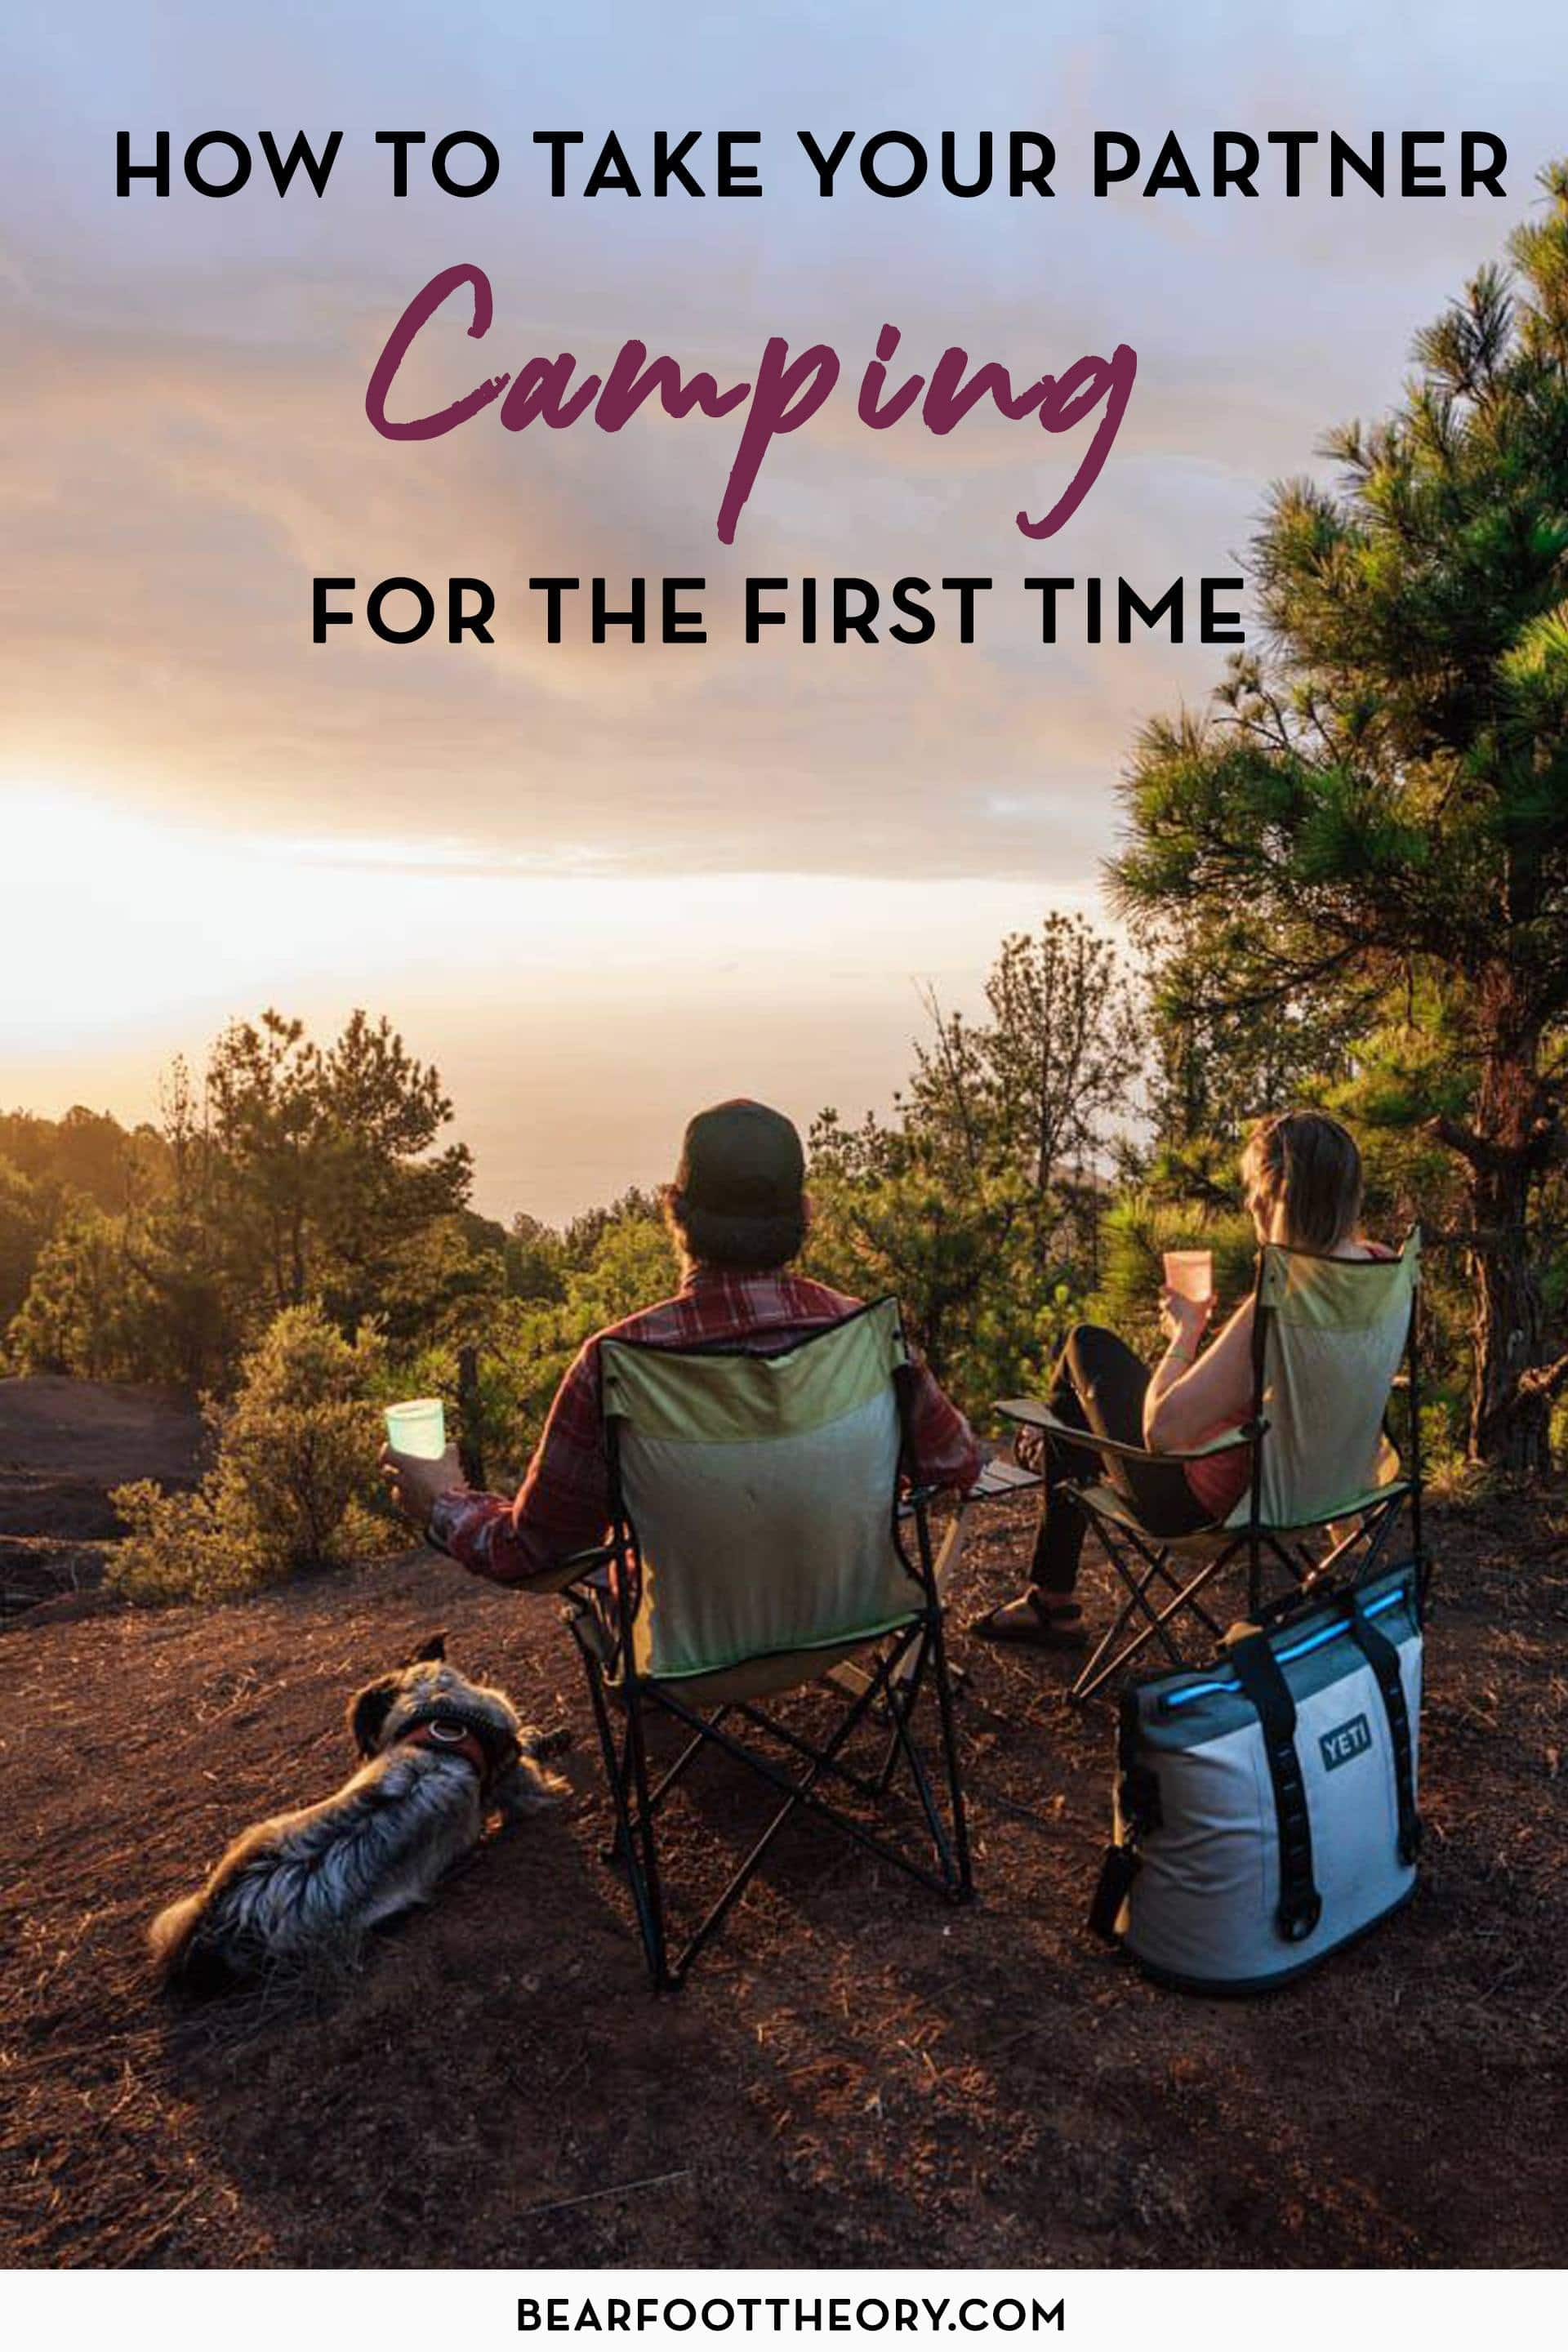 Our best advice and simple things you can do to successfully introduce your partner to camping for the first time so you both have a great experience.